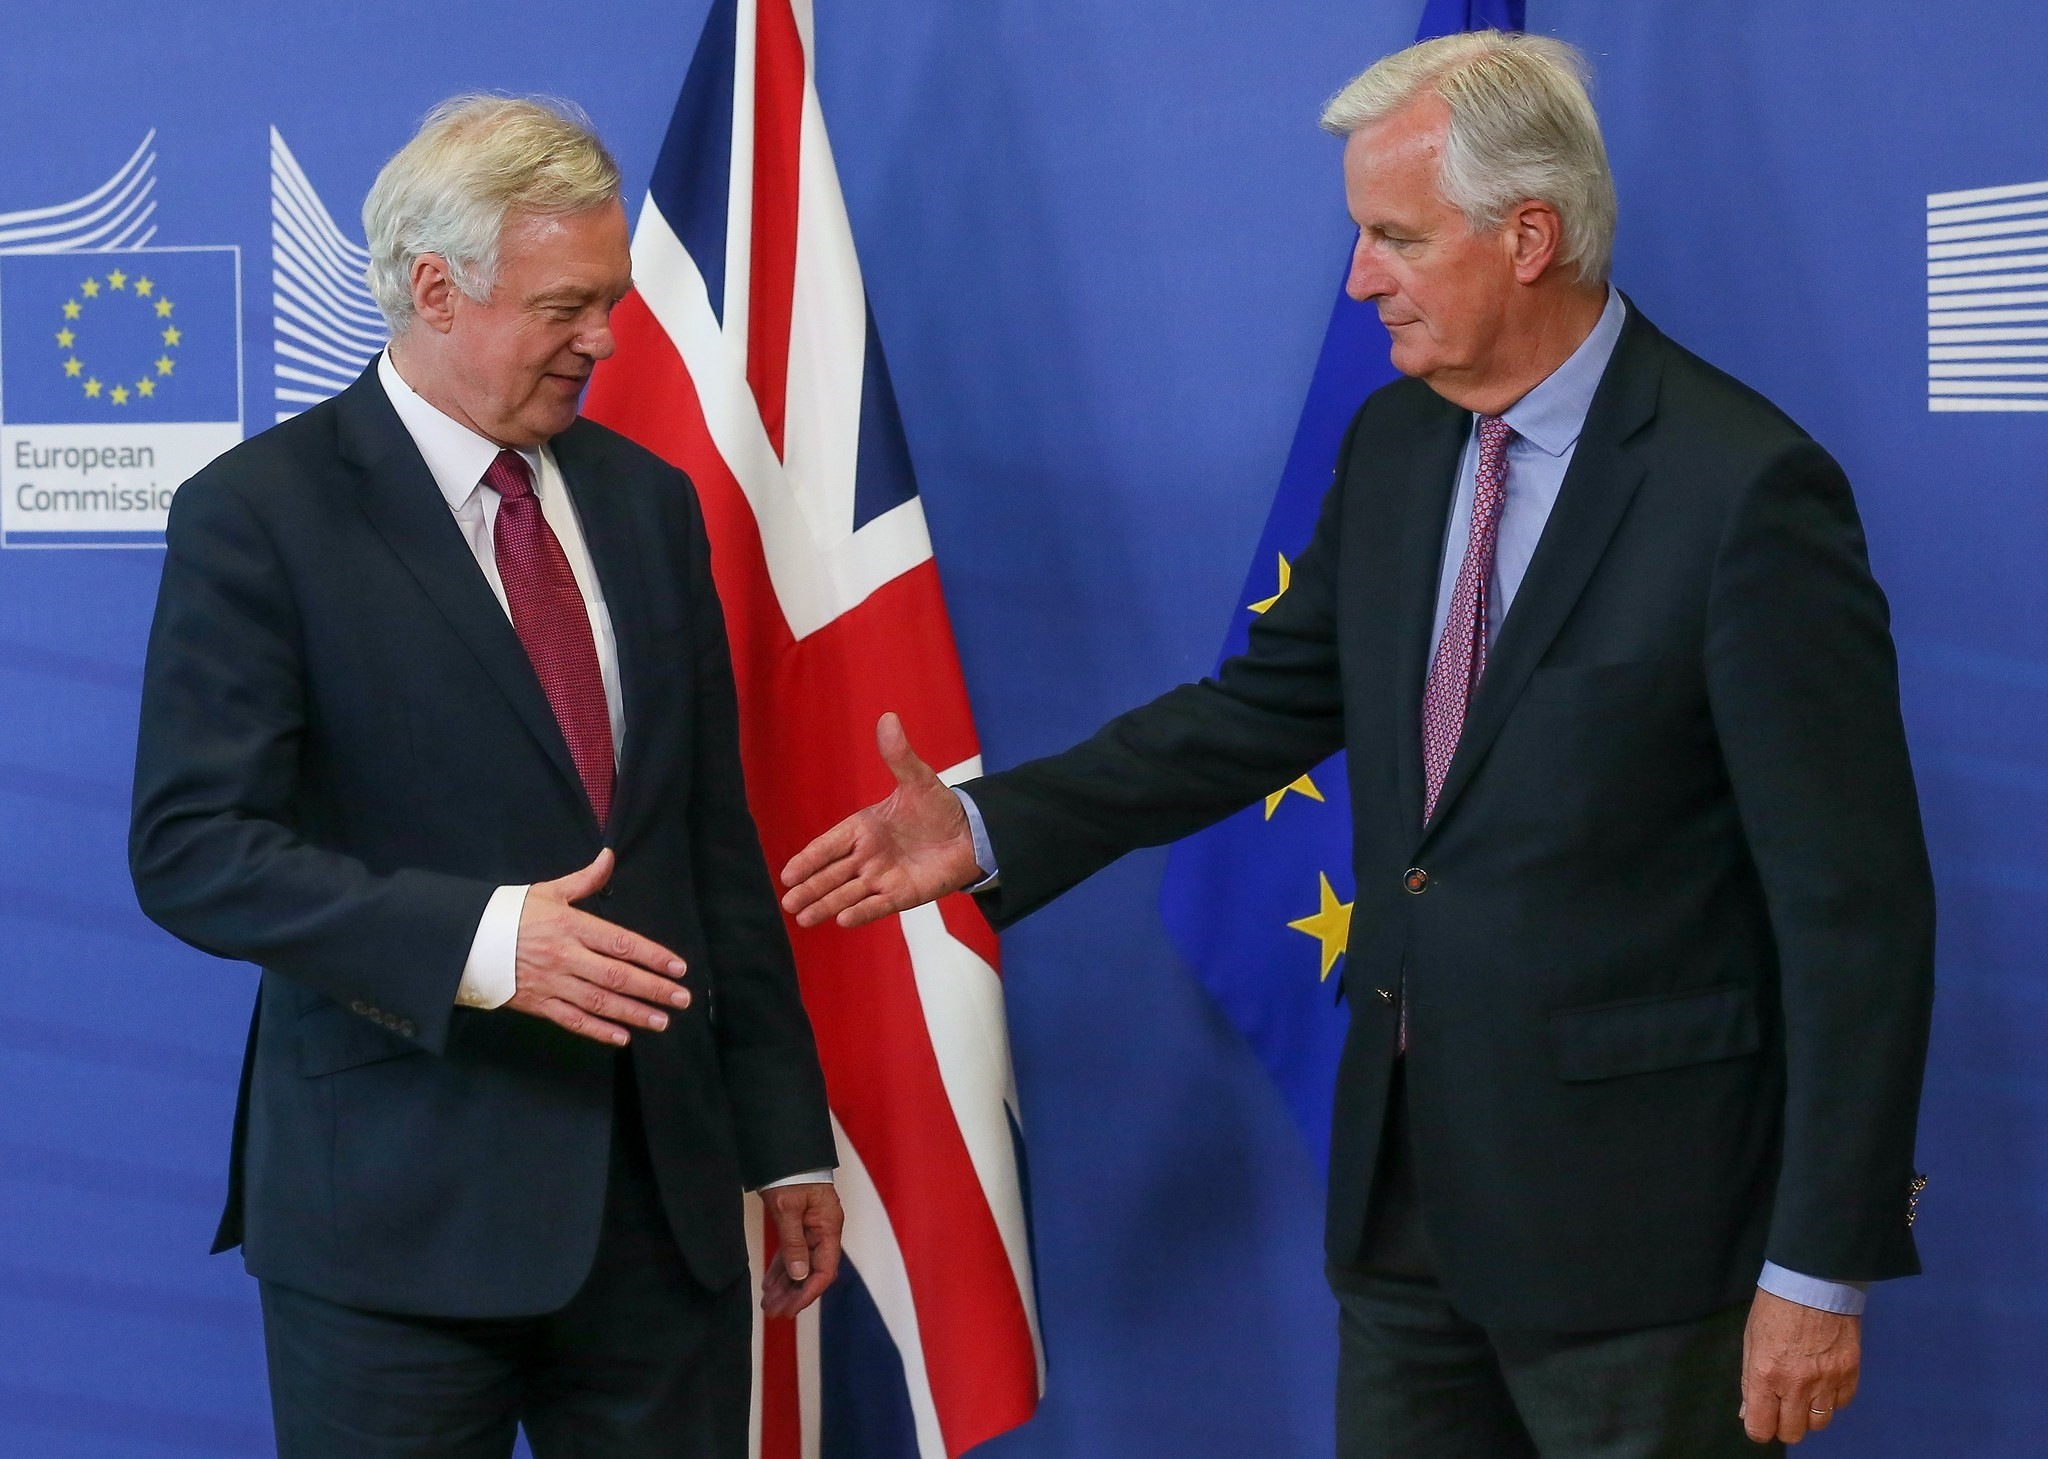 UK Secretary of State for Exiting the EU, David Davis (L) is  welcome by Michel Barnier, the European Chief Negotiator of the Task Force for the Preparation Conduct of the Negotiations with the UK under Article 50. (EPA Photo)